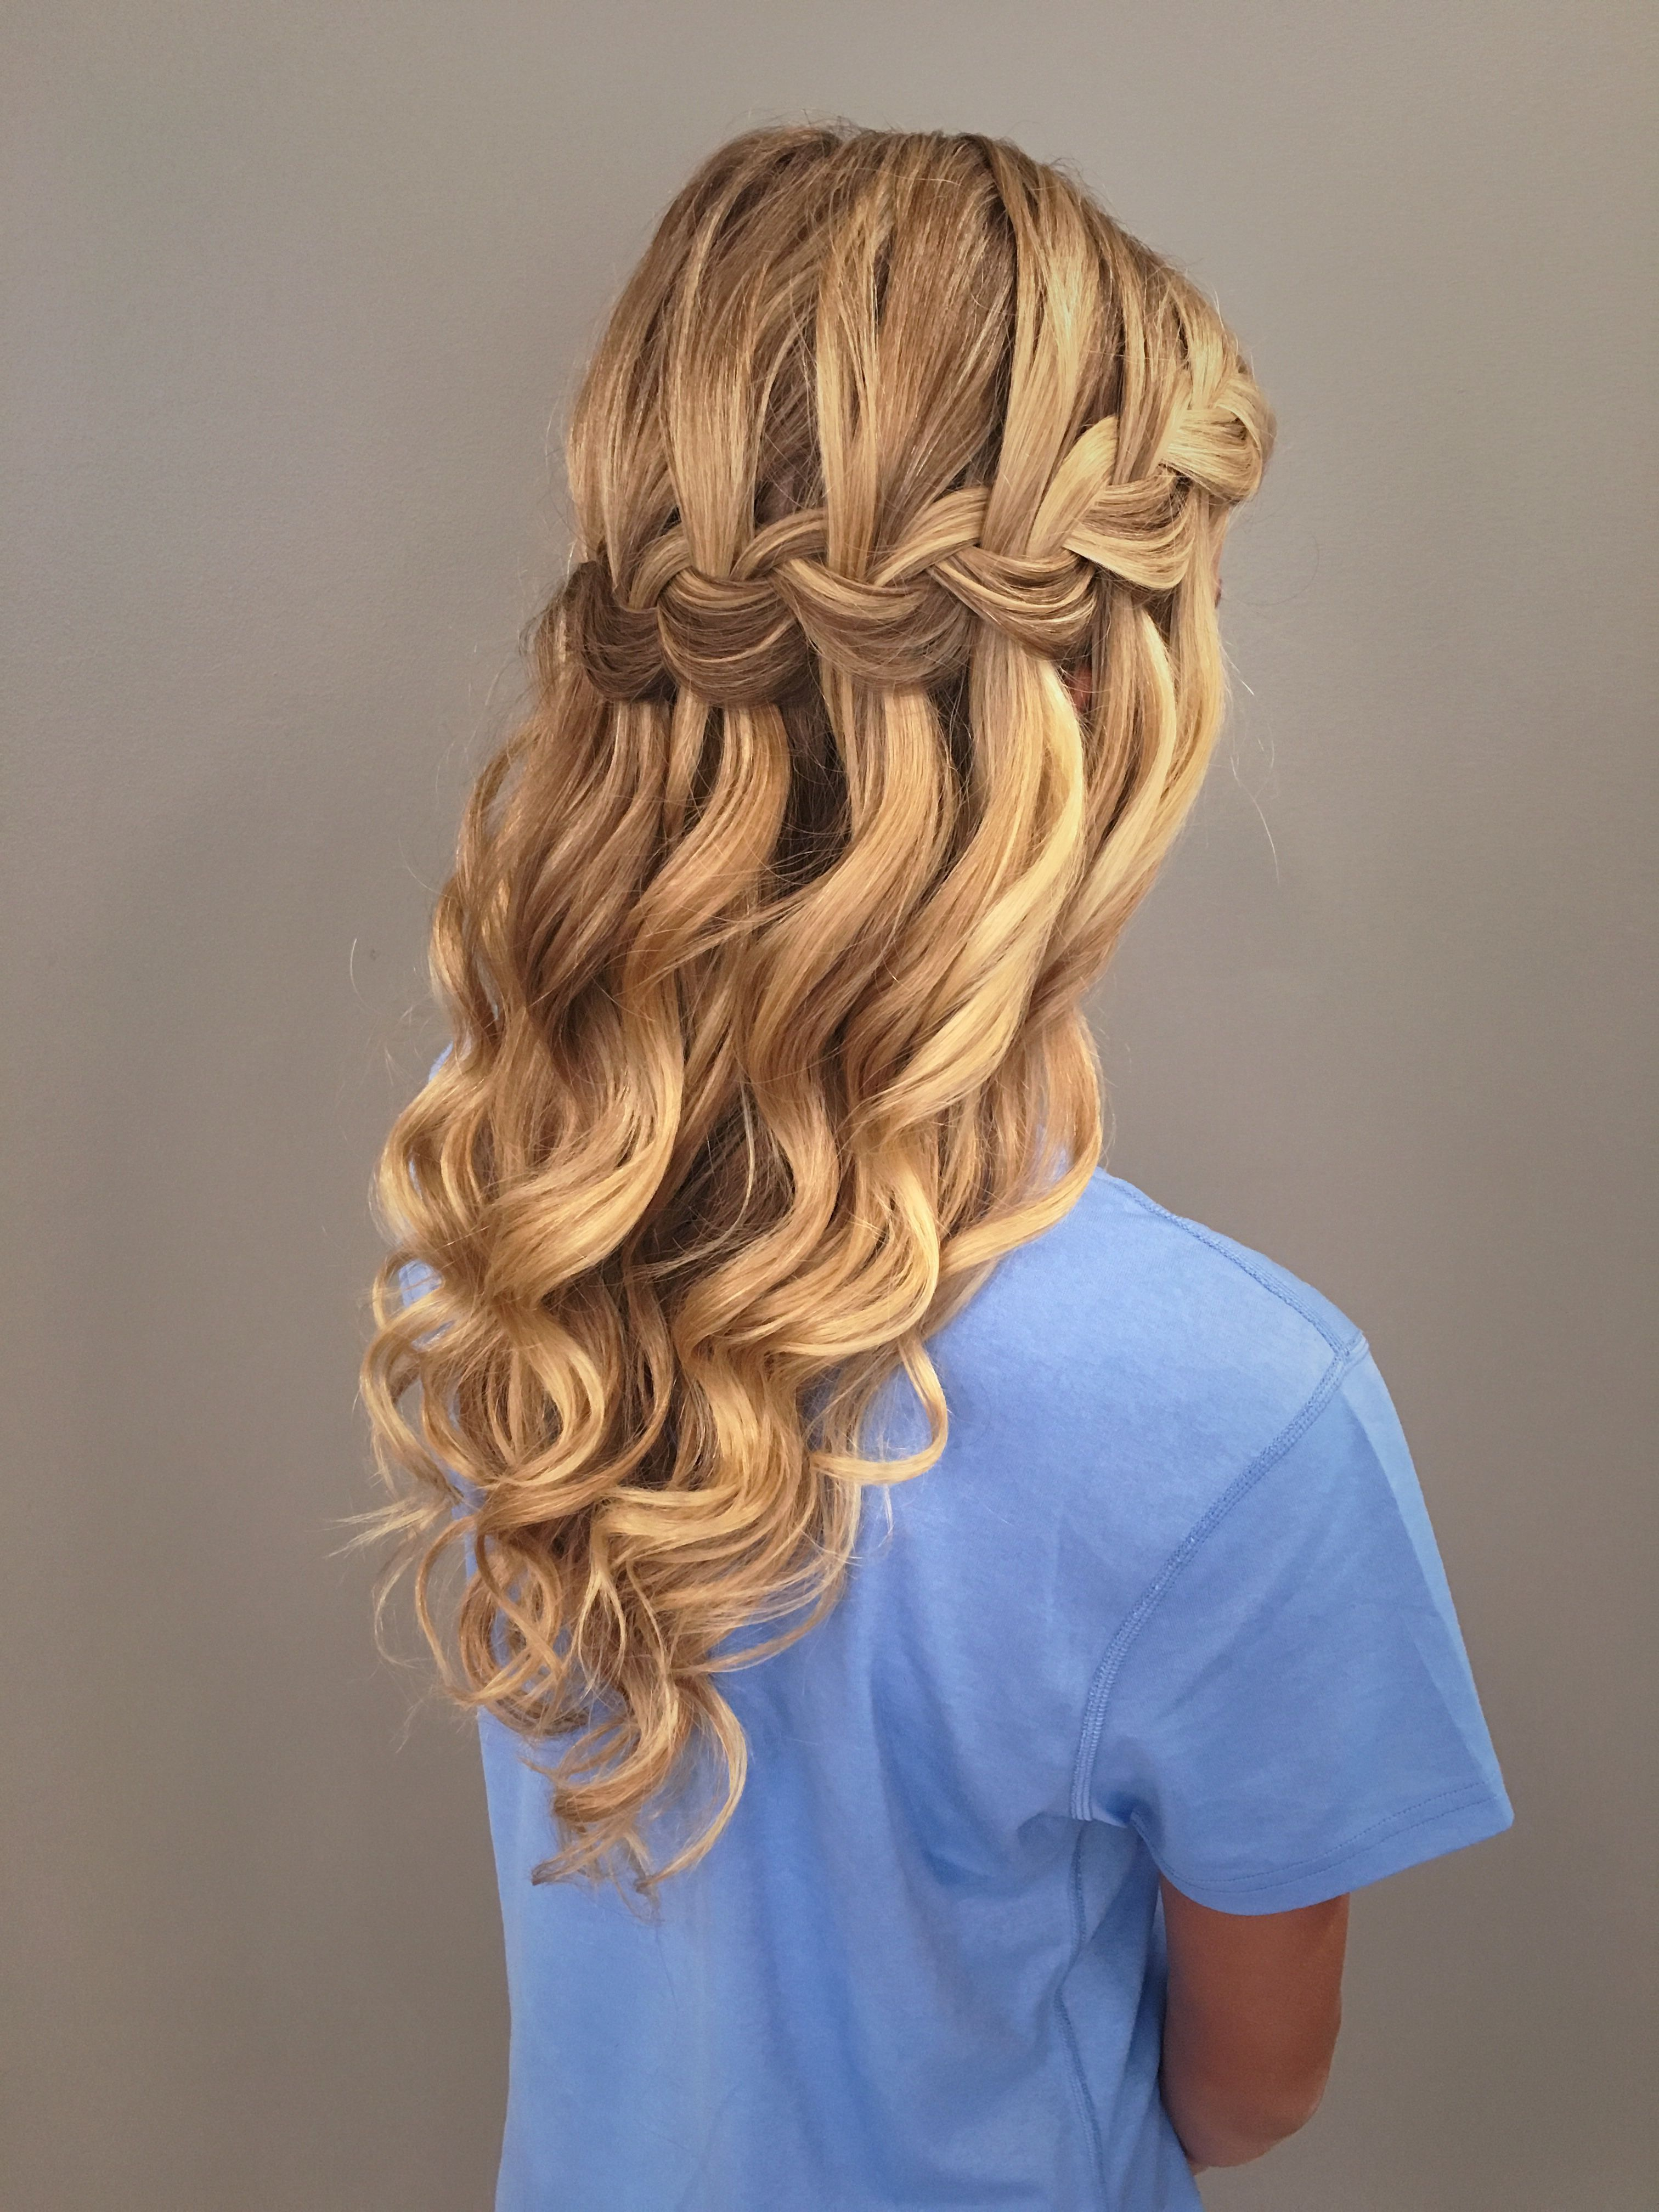 10Th Grade Formal Hairstyles For Short Hair #formal #grade